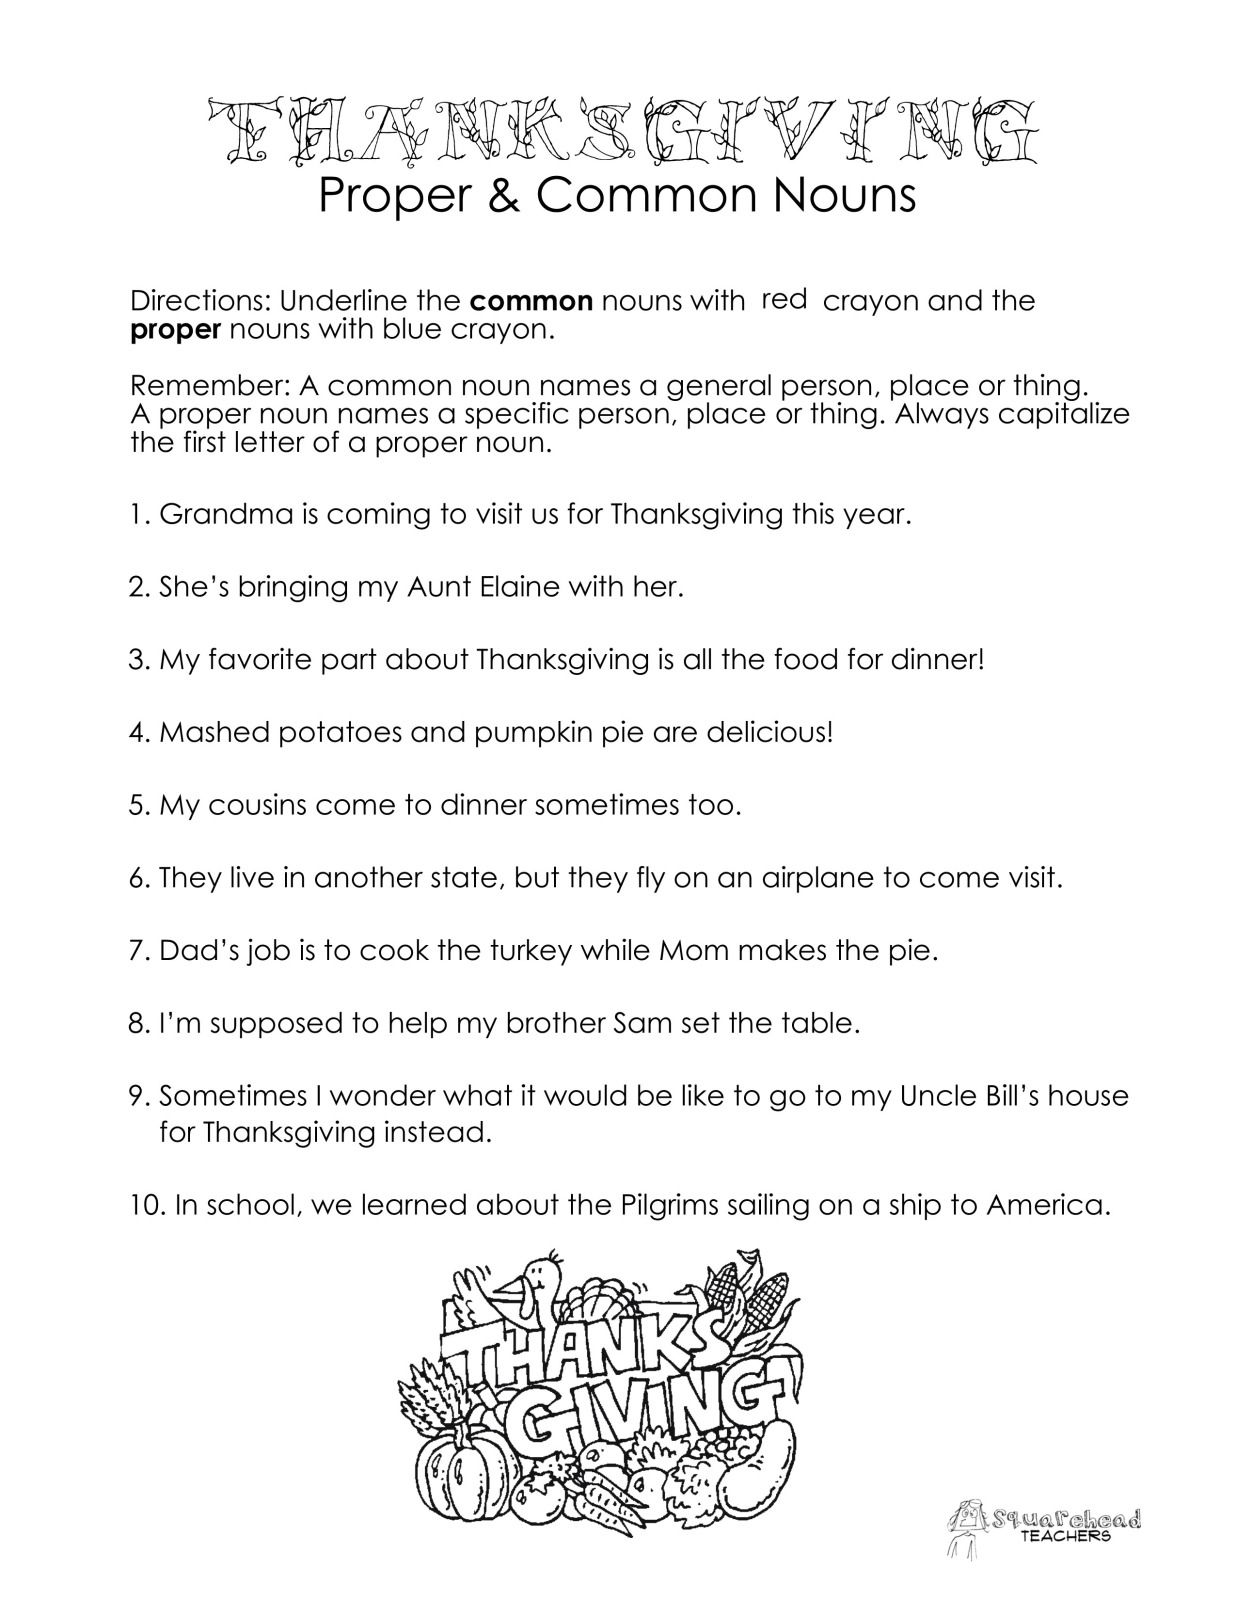 Free Collective Nouns Printable Worksheets   Printable Worksheets and  Activities for Teachers [ 1600 x 1236 Pixel ]